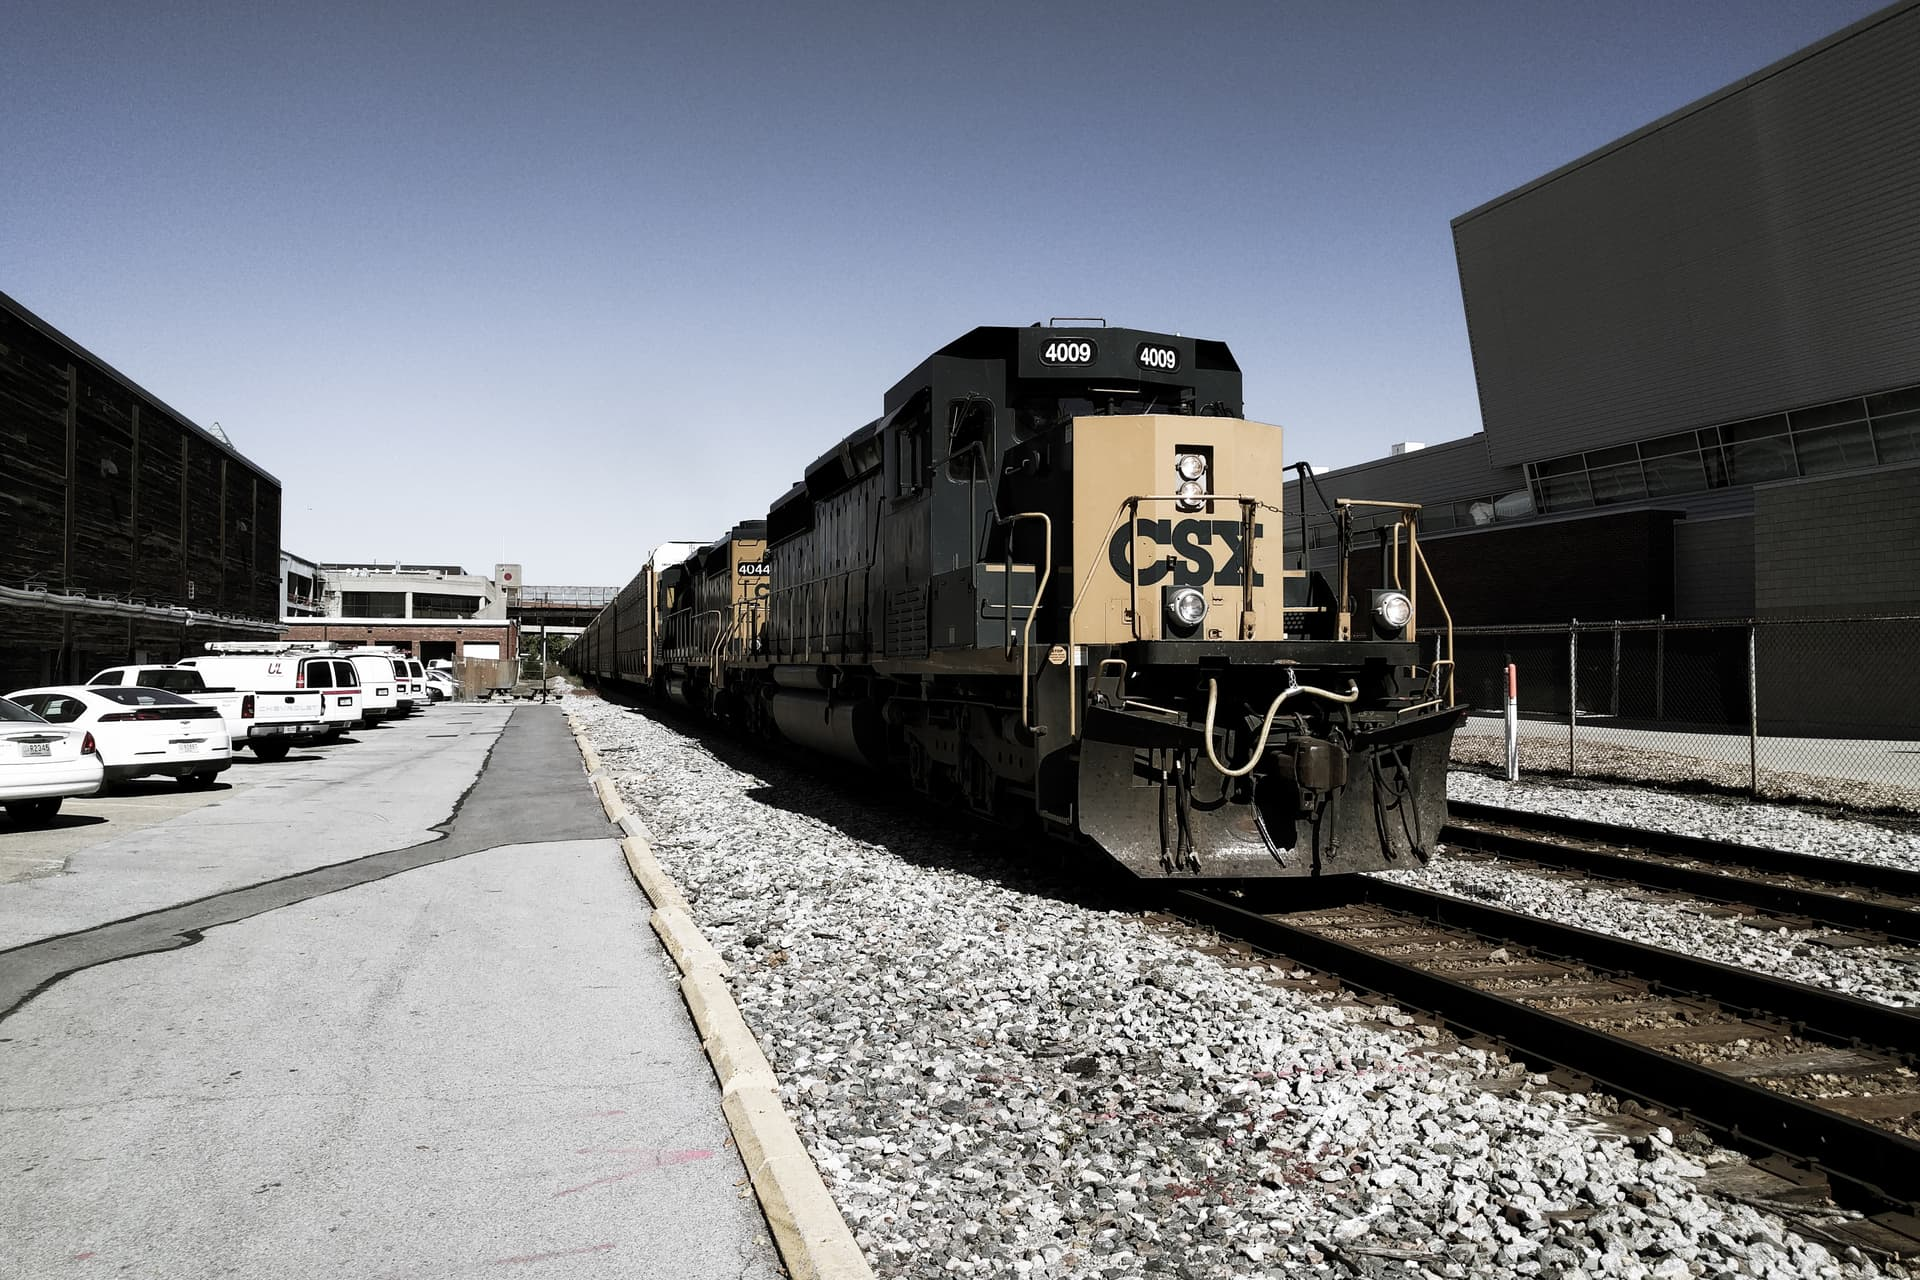 A black and yellow train approaches the camera obliquely. The train is so long that it stretches as down the tracks as far as can be seen.